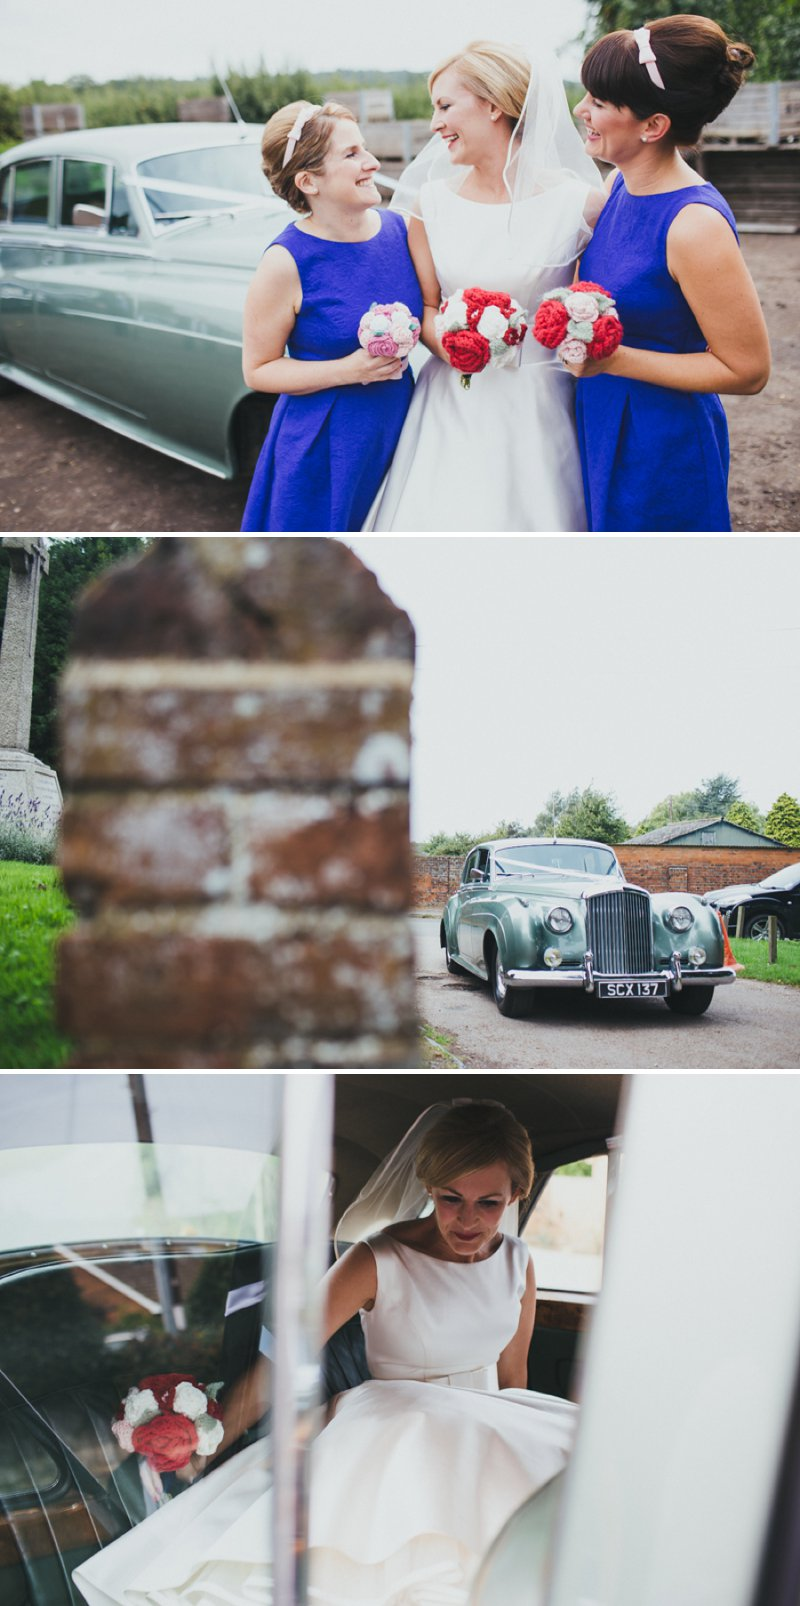 Vintage Inspired DIY Wedding At Kingston Village Hall With Bride In 50s Style Tea Length Gown And Groom In Topman Suit With Red Shoes And Knitted Bouquets, Ties And Corsages With Fete Games And A Coconut Shy 3